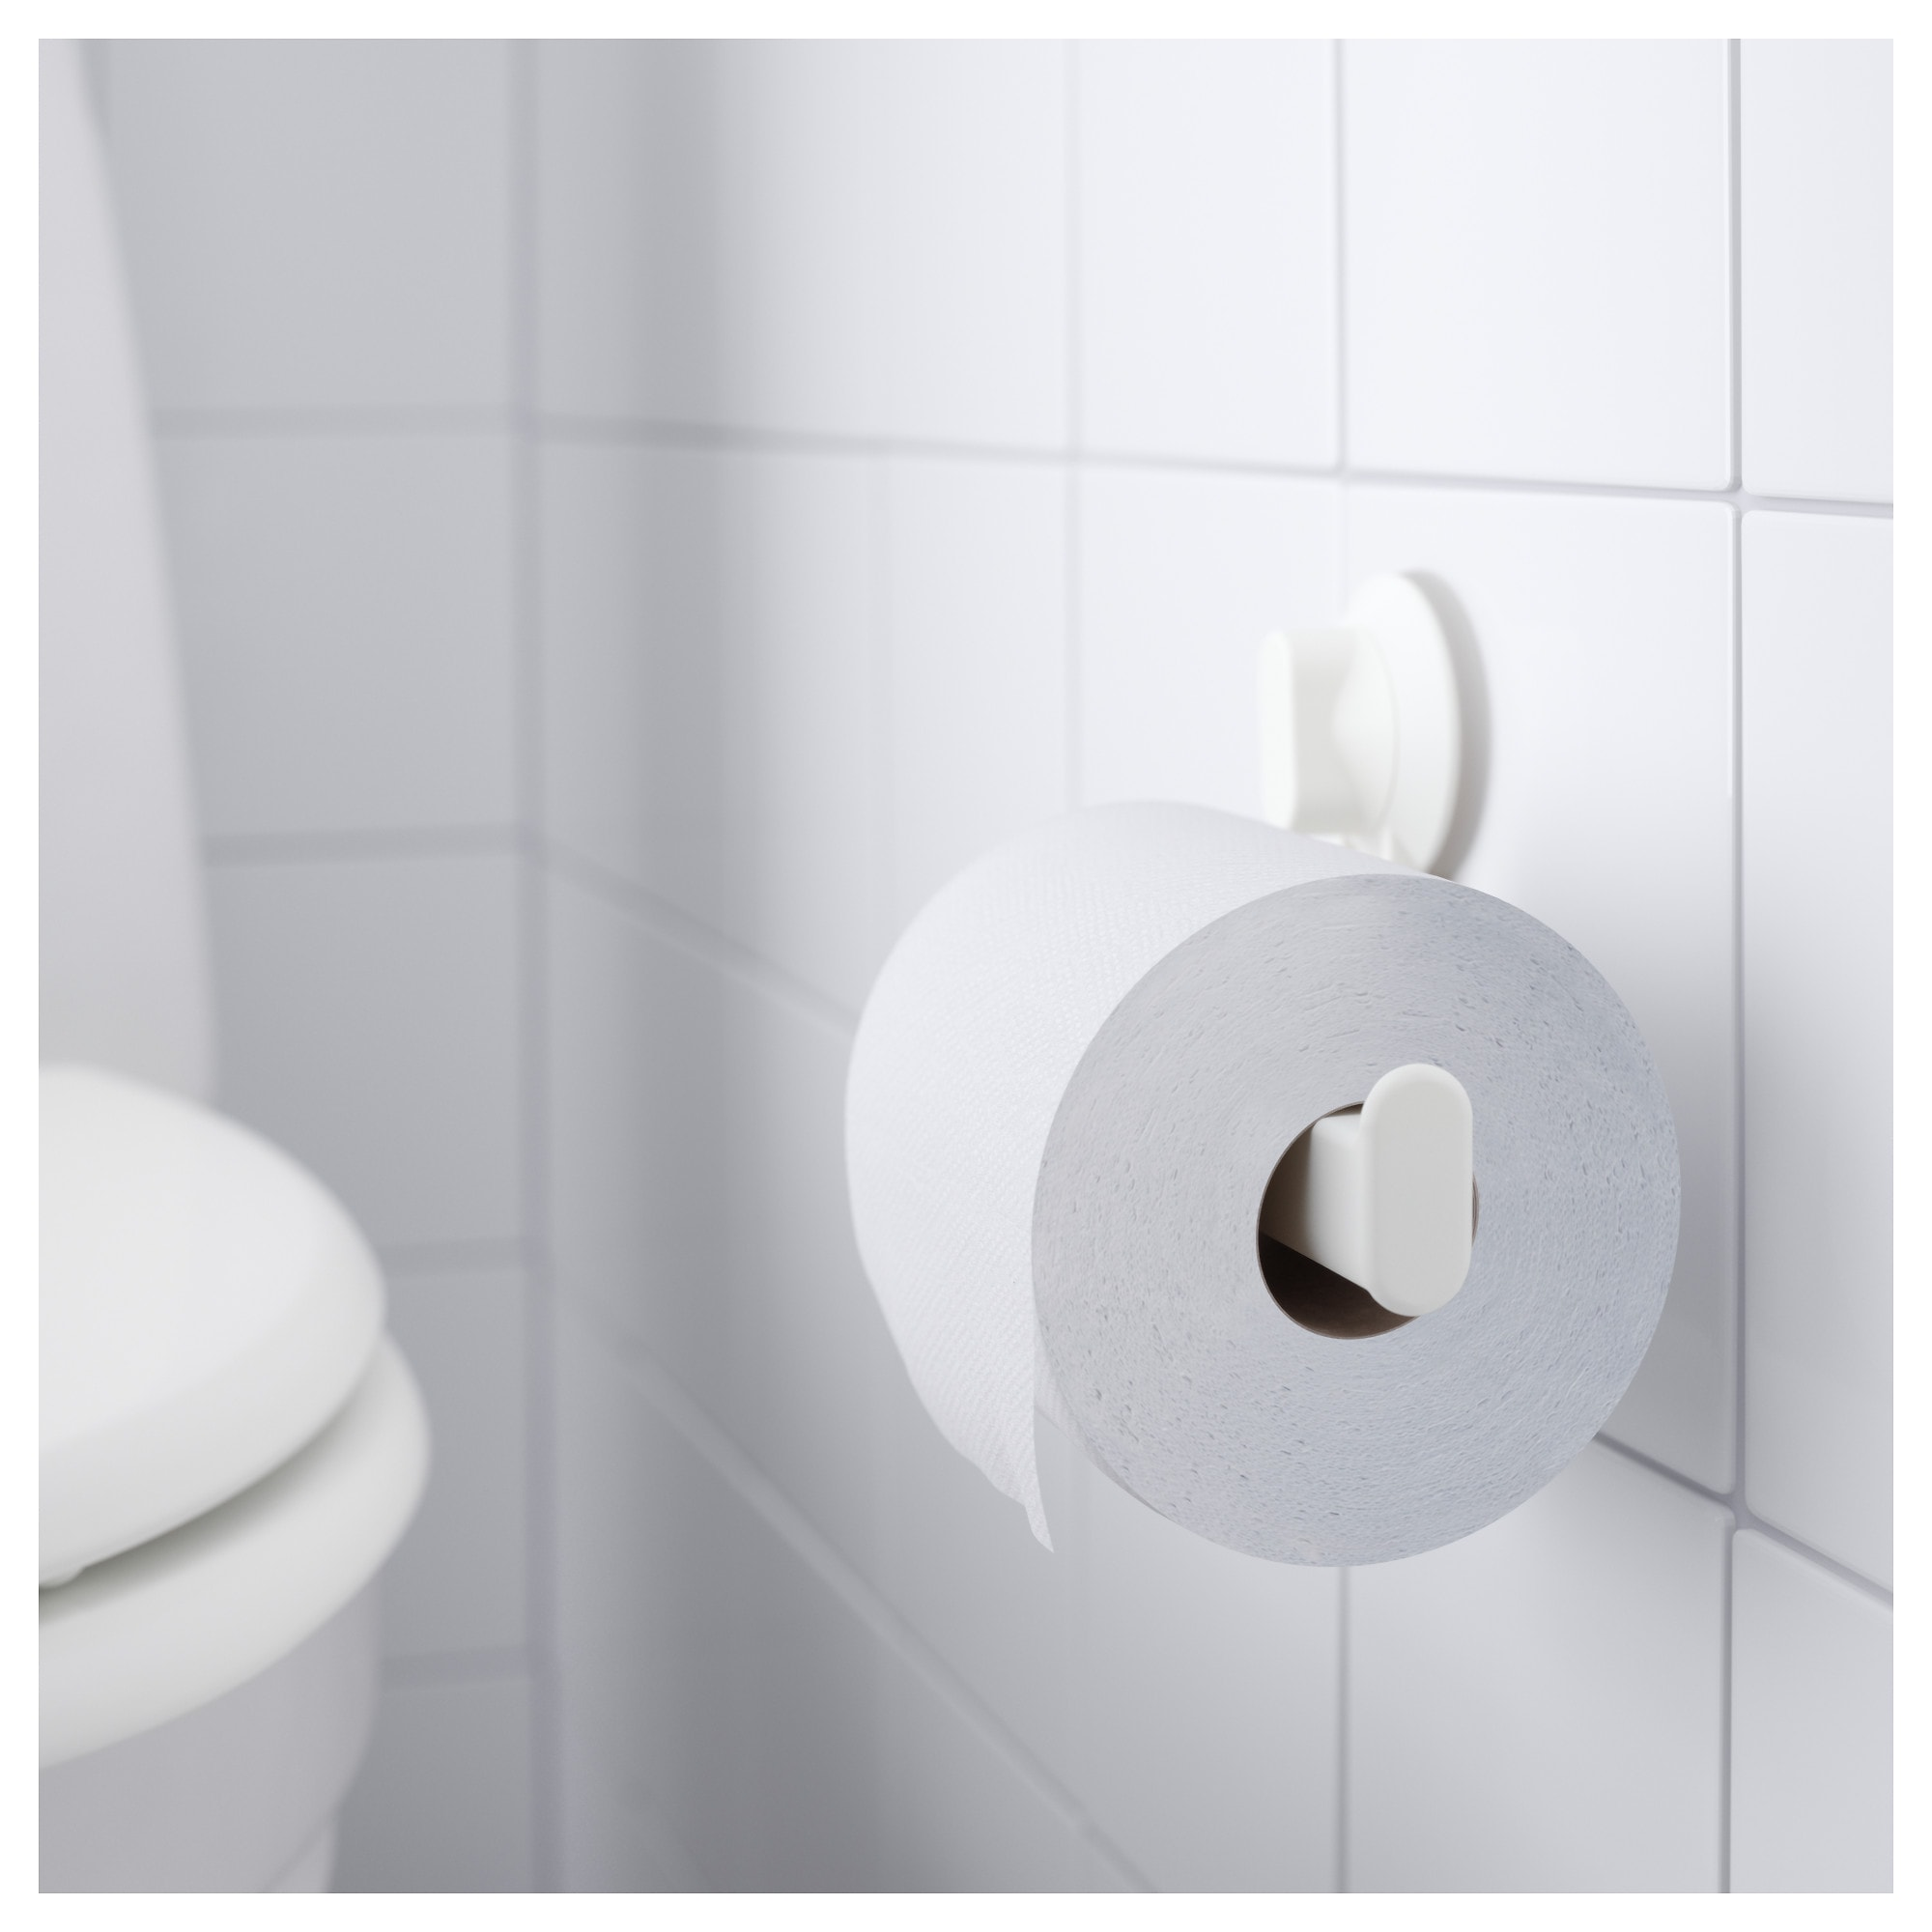 STUGVIK Toilet roll holder with suction cup - IKEA